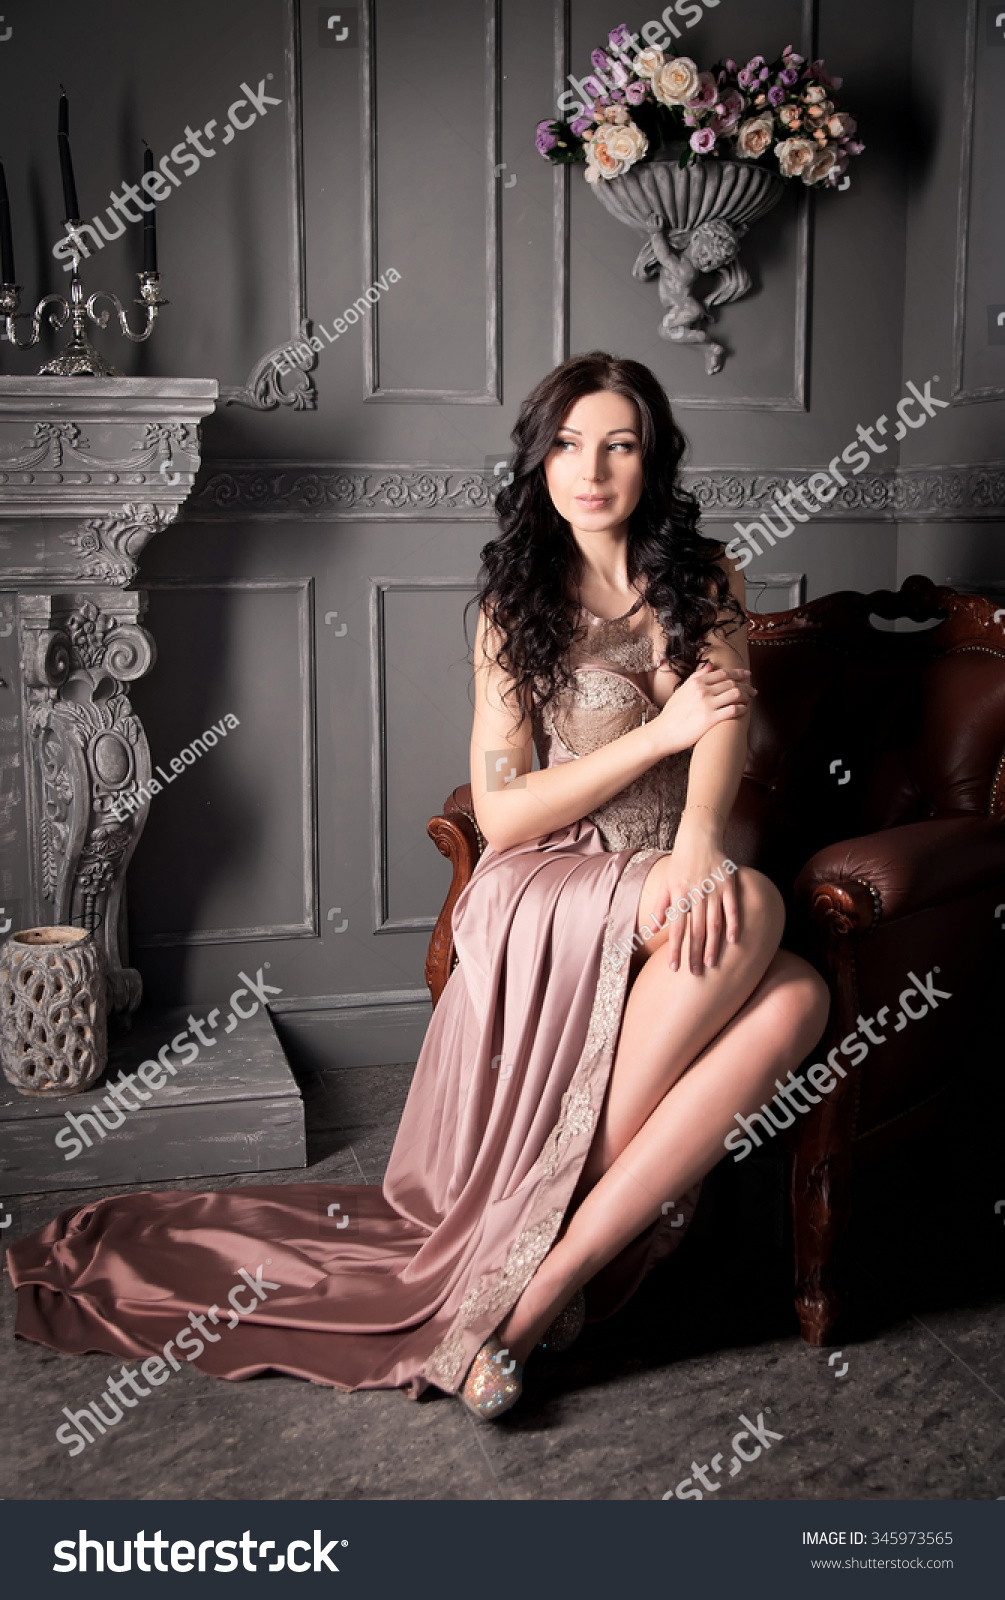 Woman sitting armchair long beige dress stock photo for Sitting in armchair